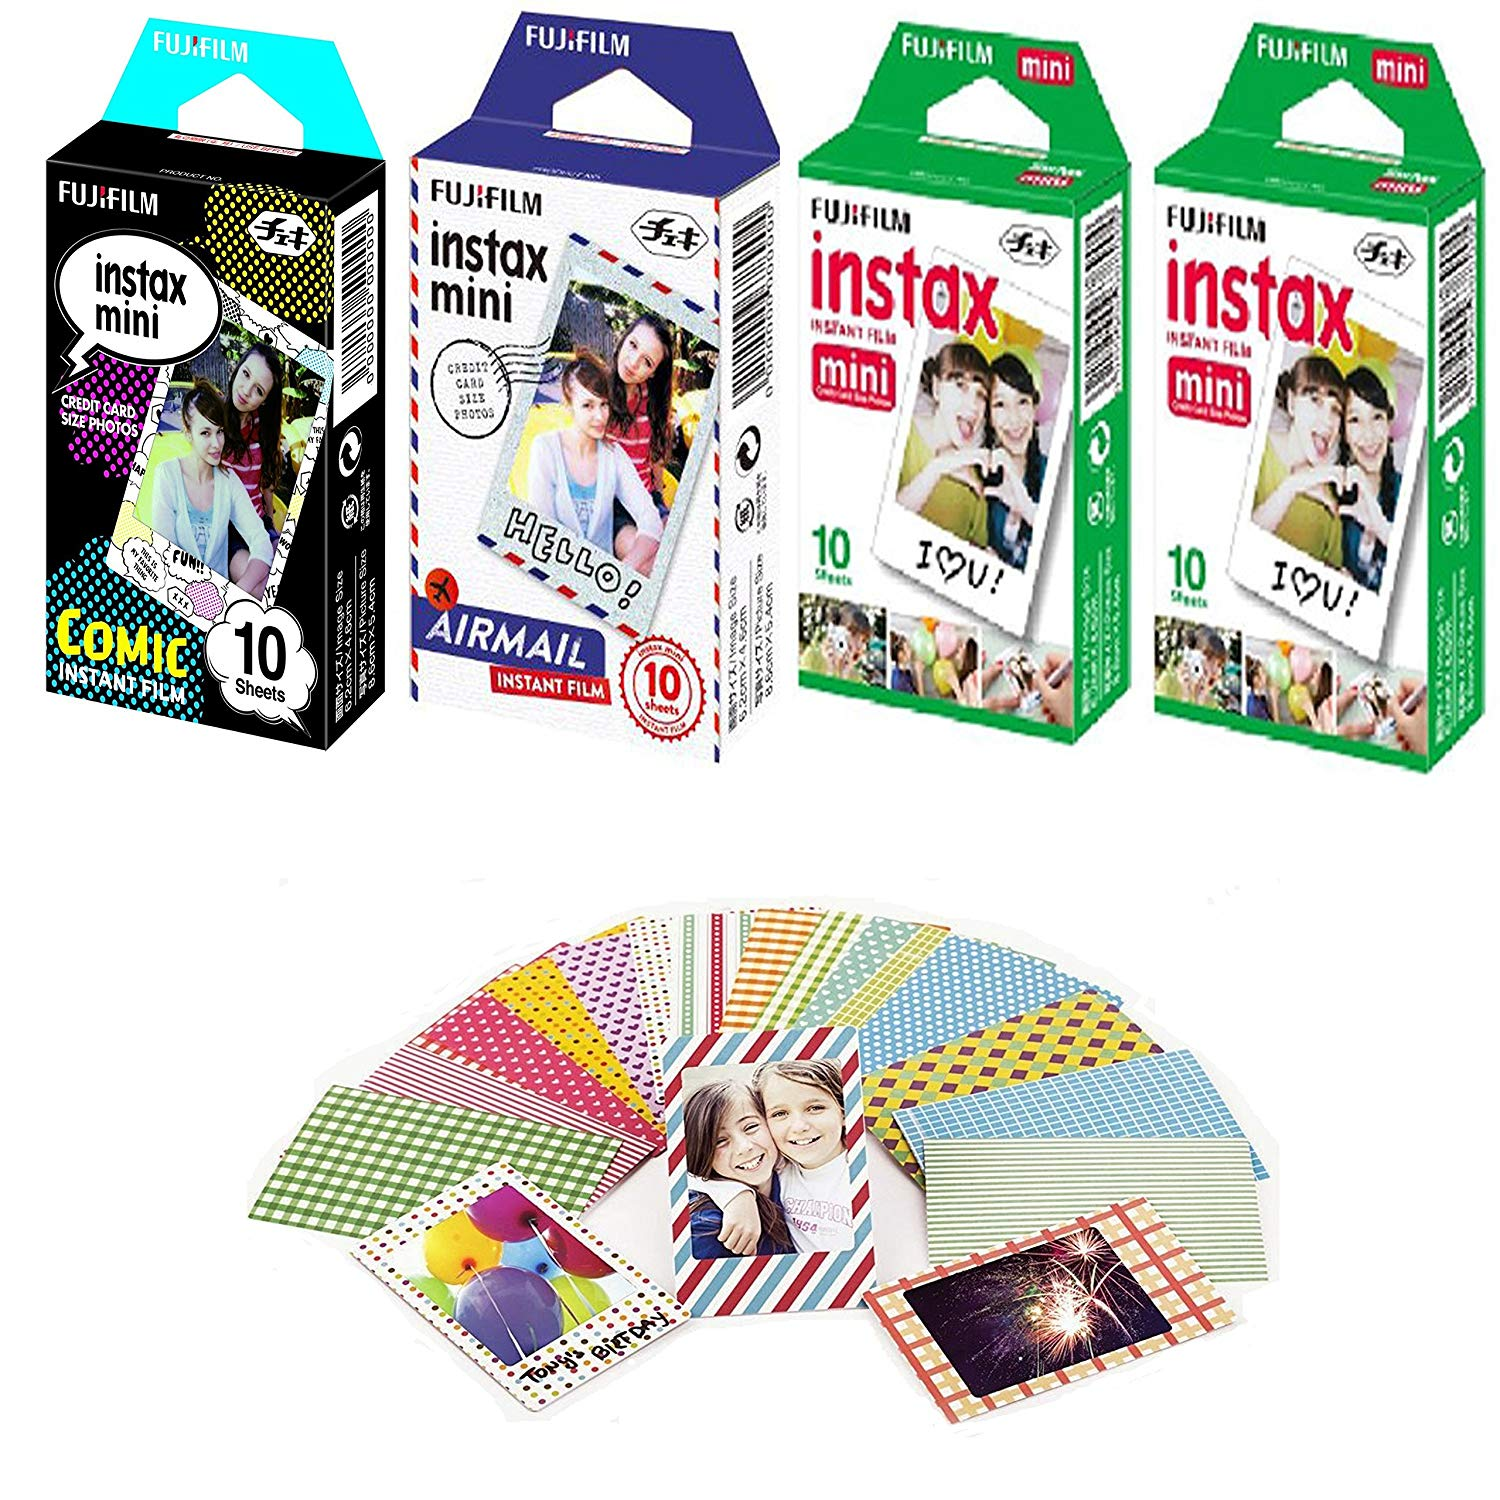 Fujifilm Instax Mini Instant Film Comic 10x1 + Airmail 10x1+ White 10x2 with 20 Decorative Skin Stickers